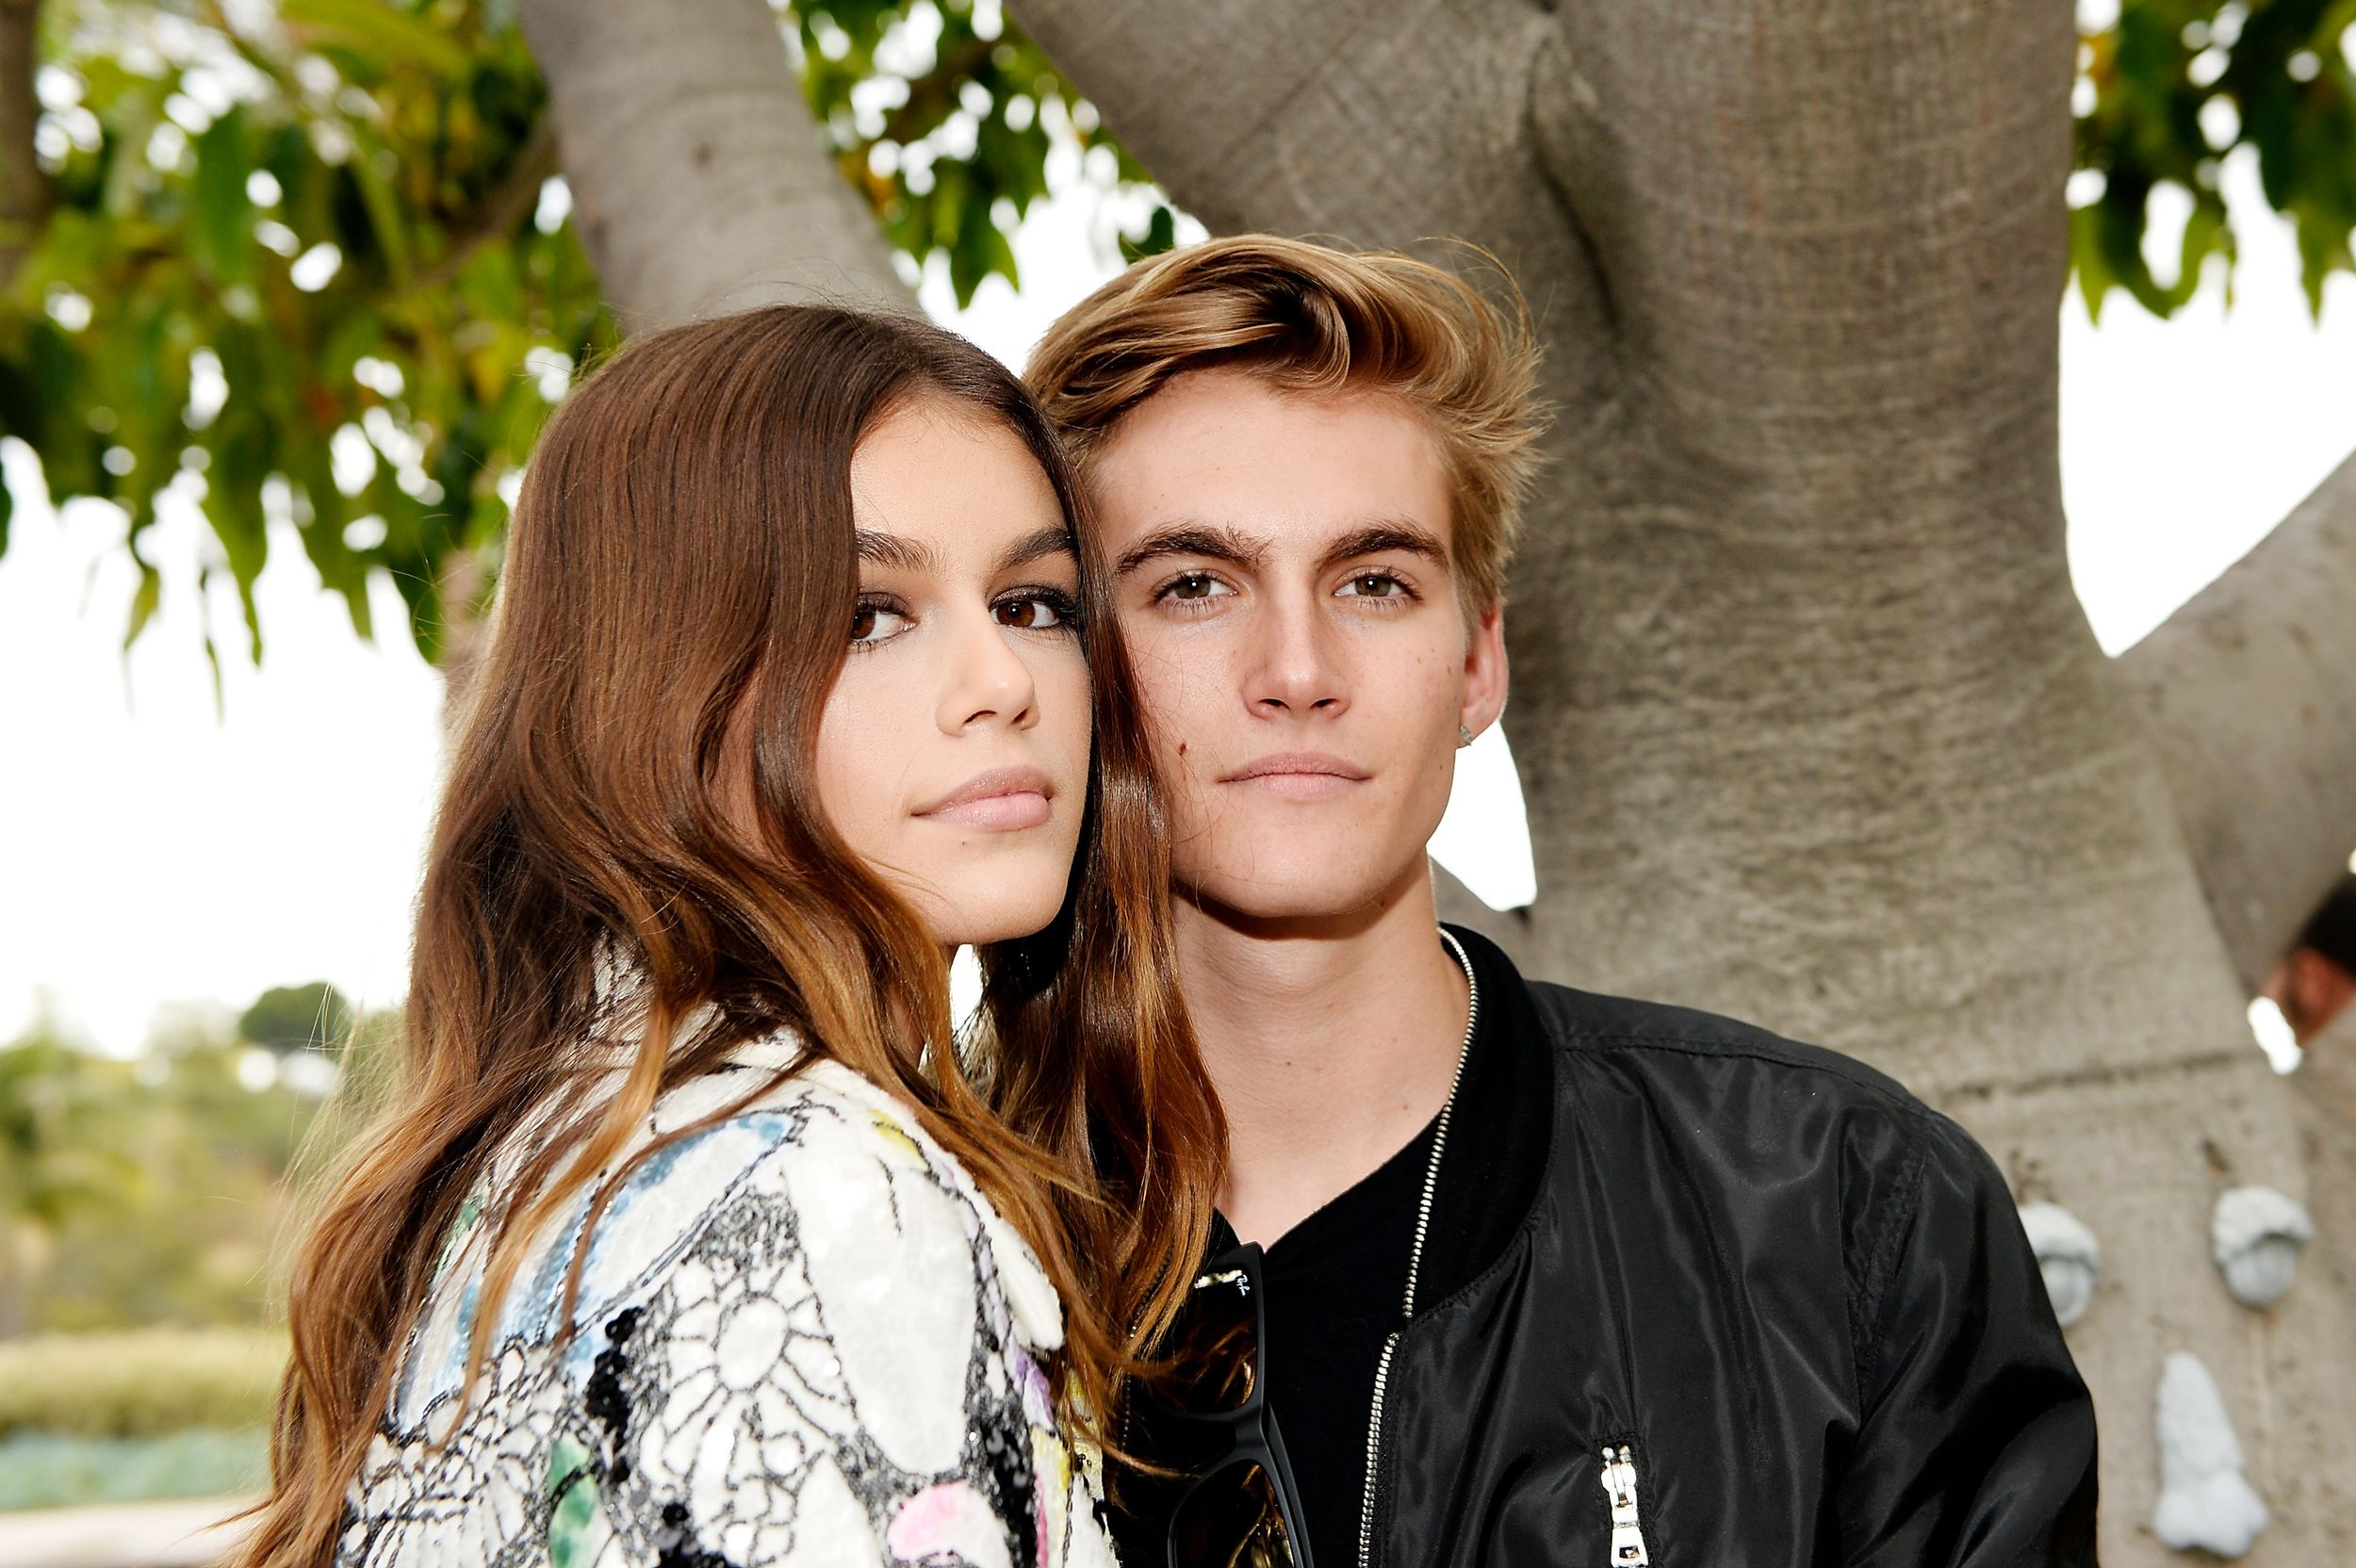 Cindy Crawford's son just got a tattoo of his sister's